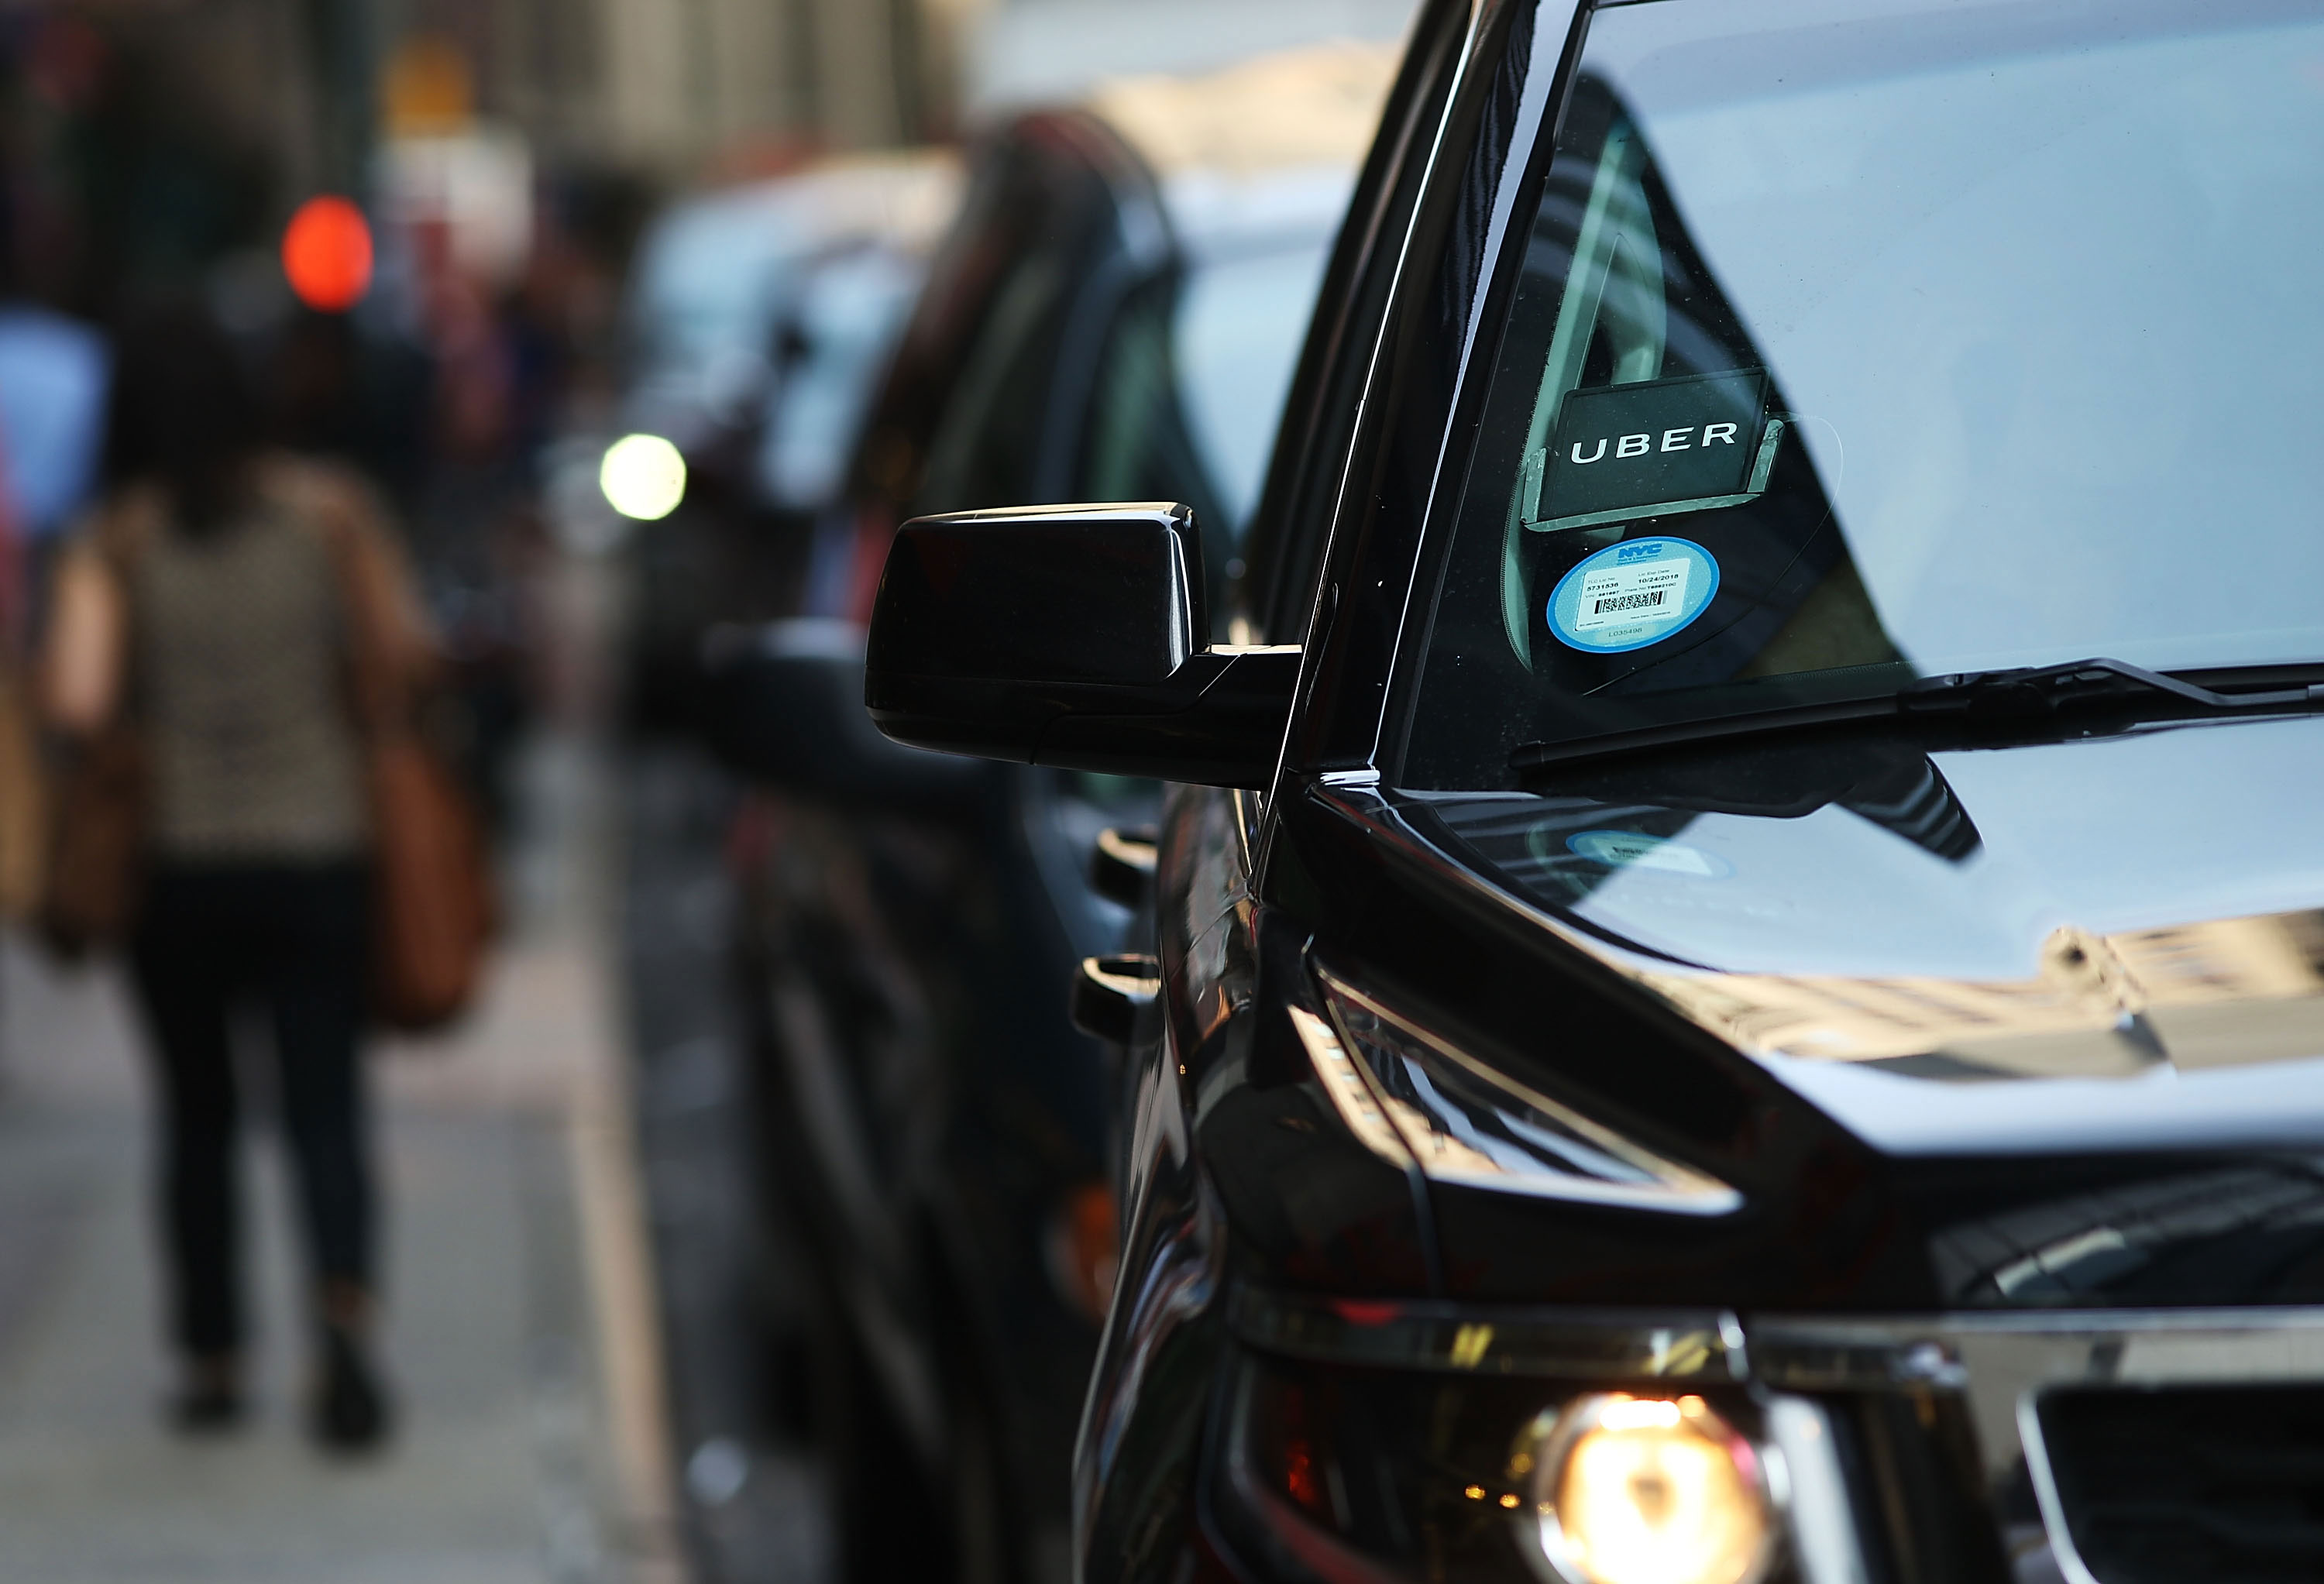 Uber and Lyft ride services paused for Tuesday night's curfew in New York City